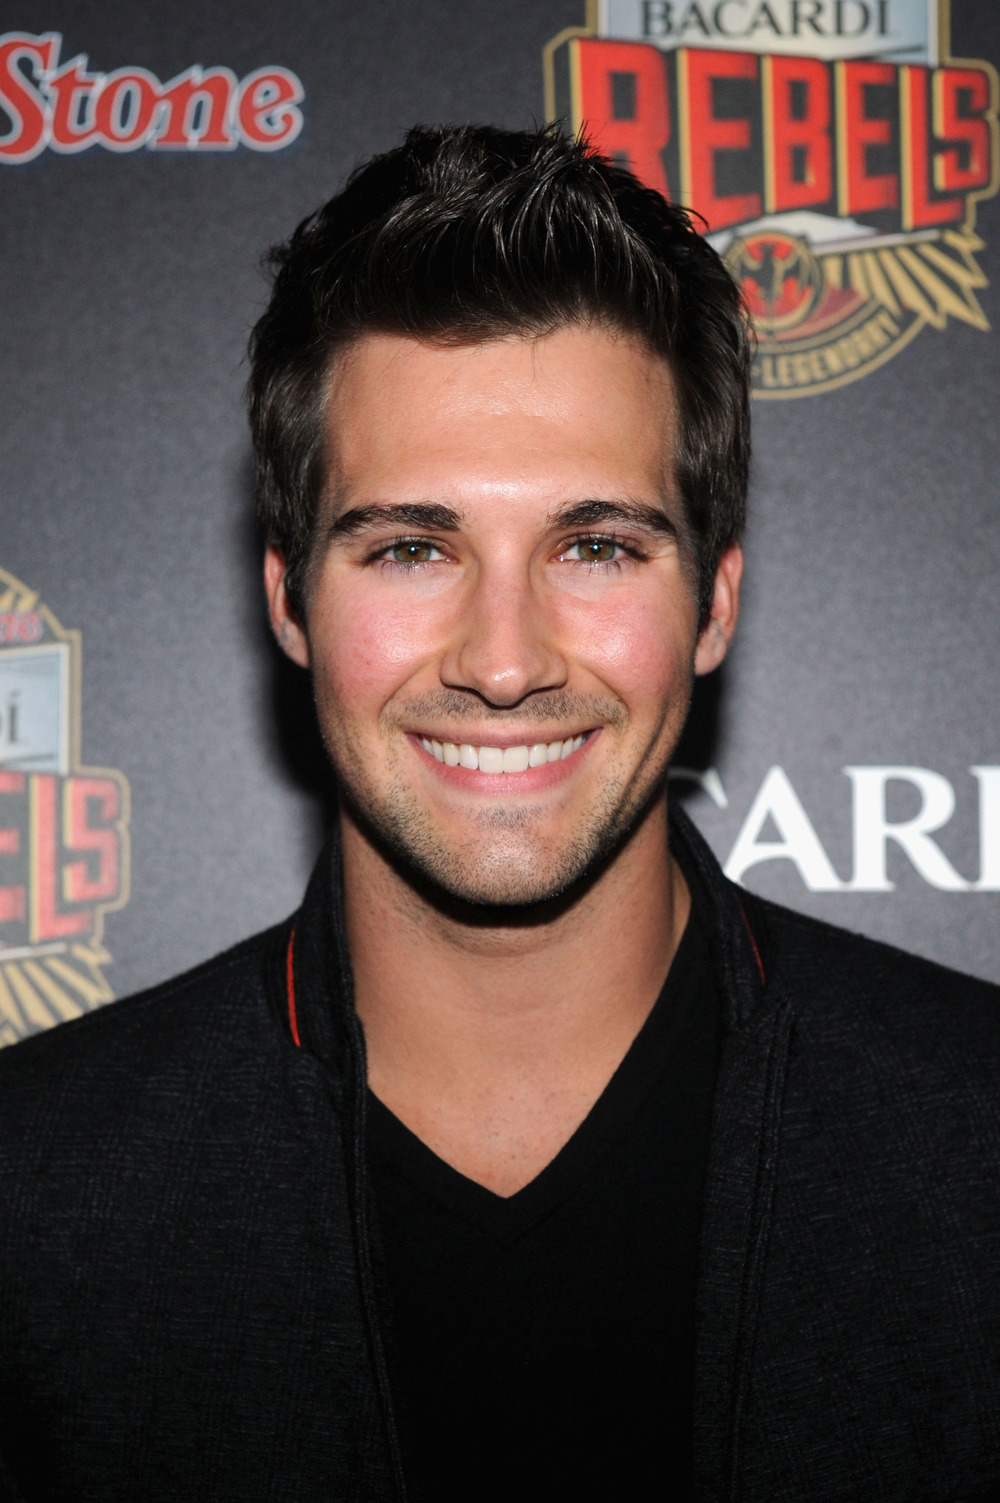 Dancing With the Stars: Will James Maslow Be in Magic Mike 2?